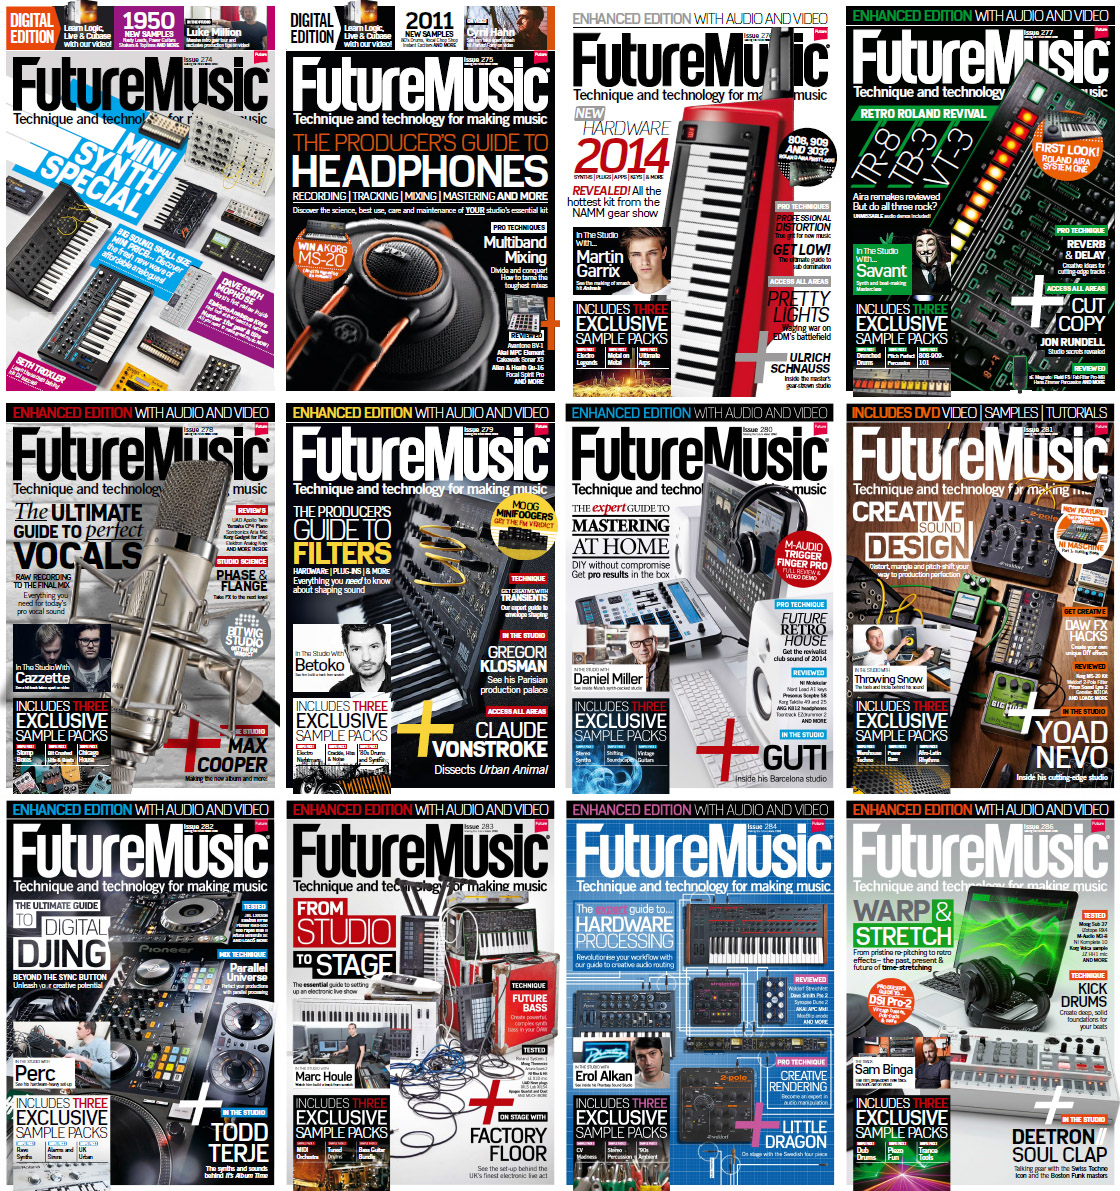 Future Music Magazine - 2014 Full Year Issues Collection